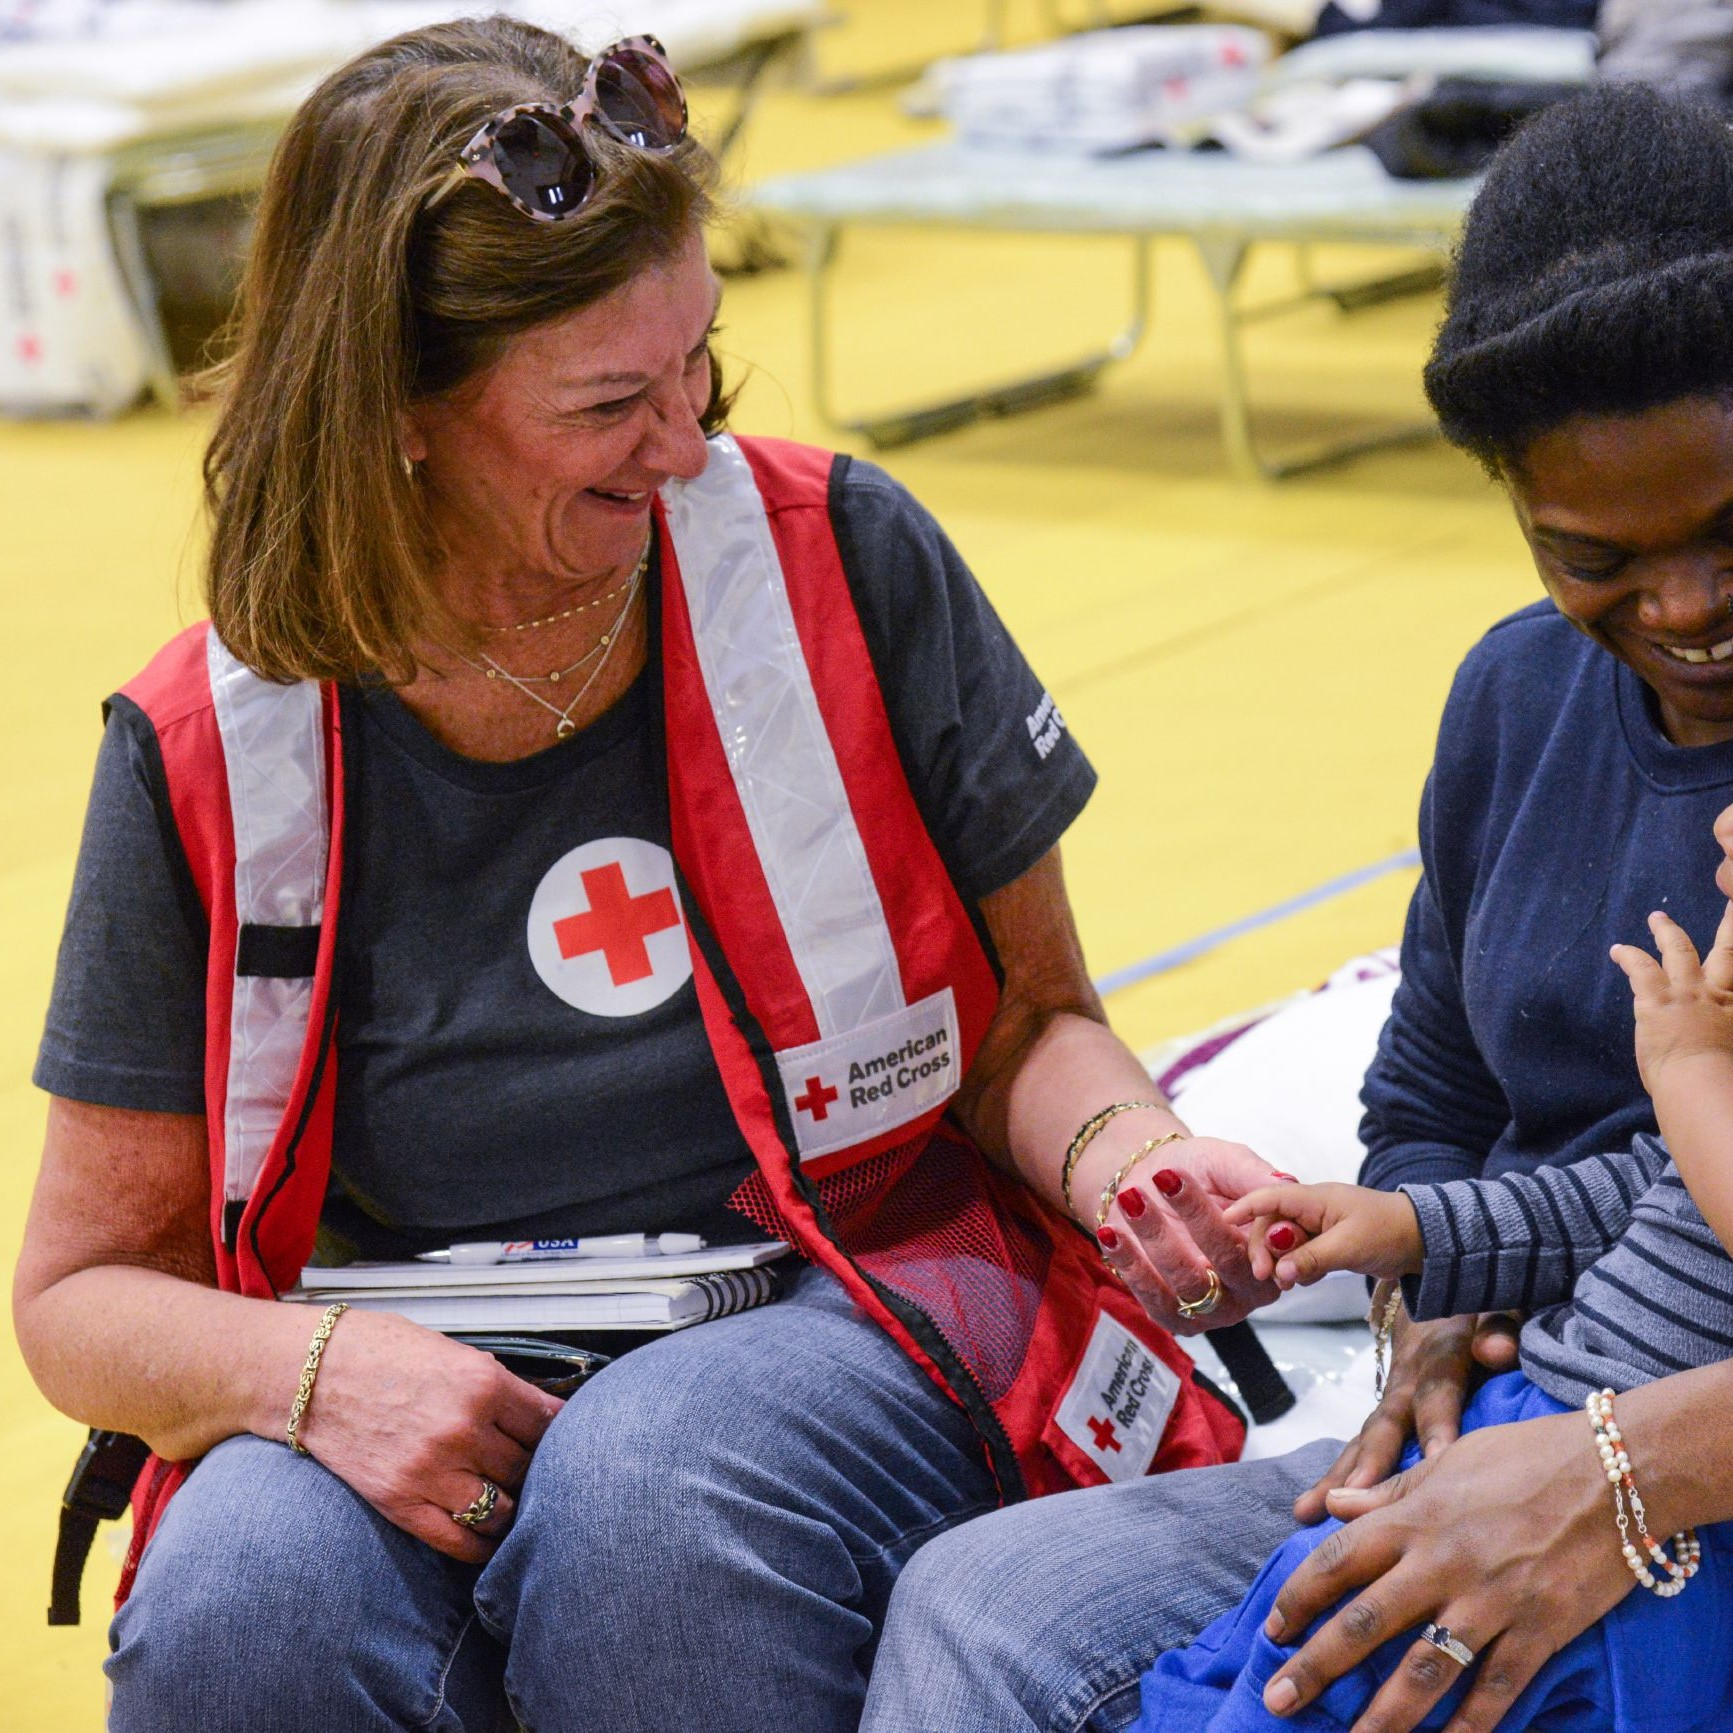 A Red Cross volunteer in a red and white vest sits on a cot with a woman and baby. They are talking and smiling.